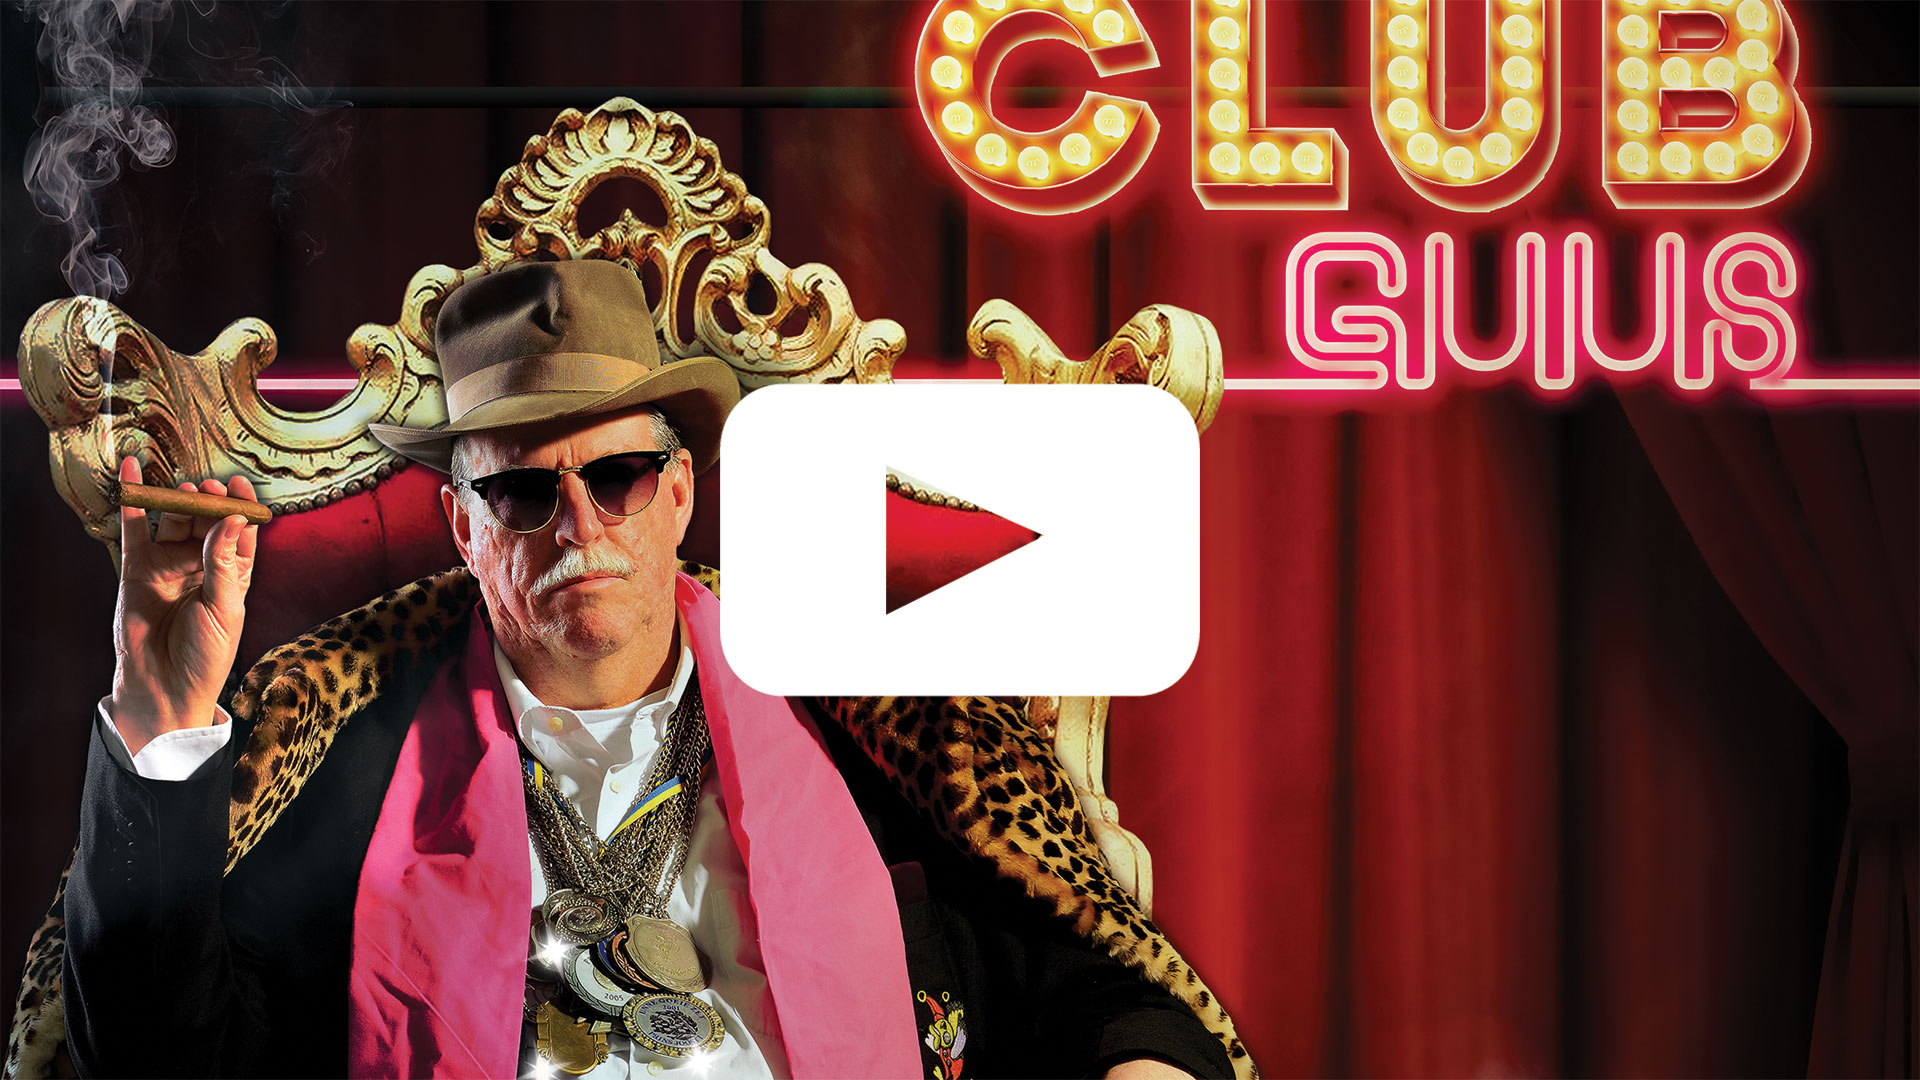 Video - Club Guus